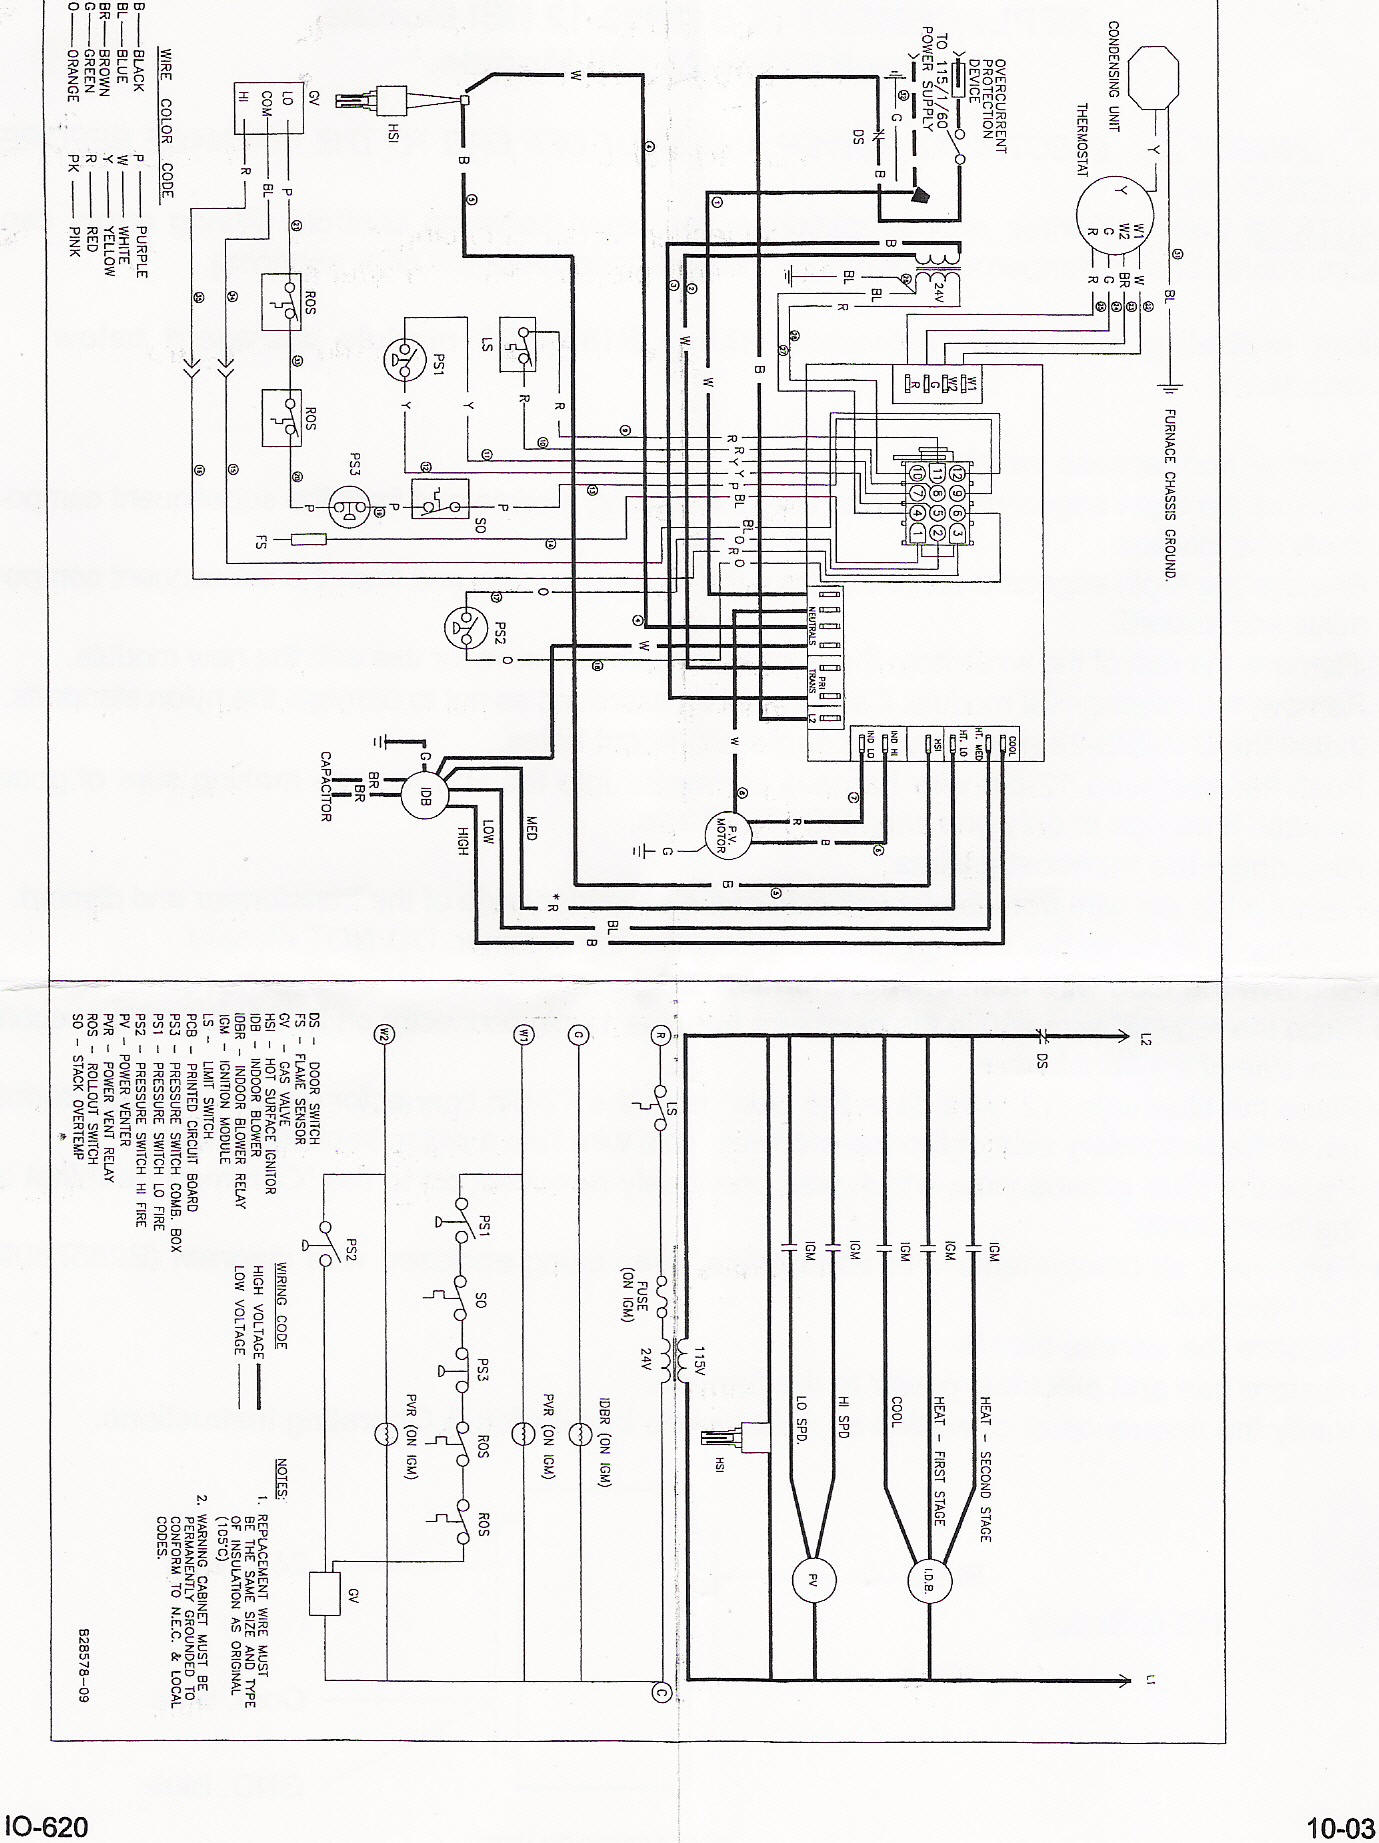 goodma2 instr goodman control board b18099 23 instructions fenwal ignition module wiring diagram at cita.asia